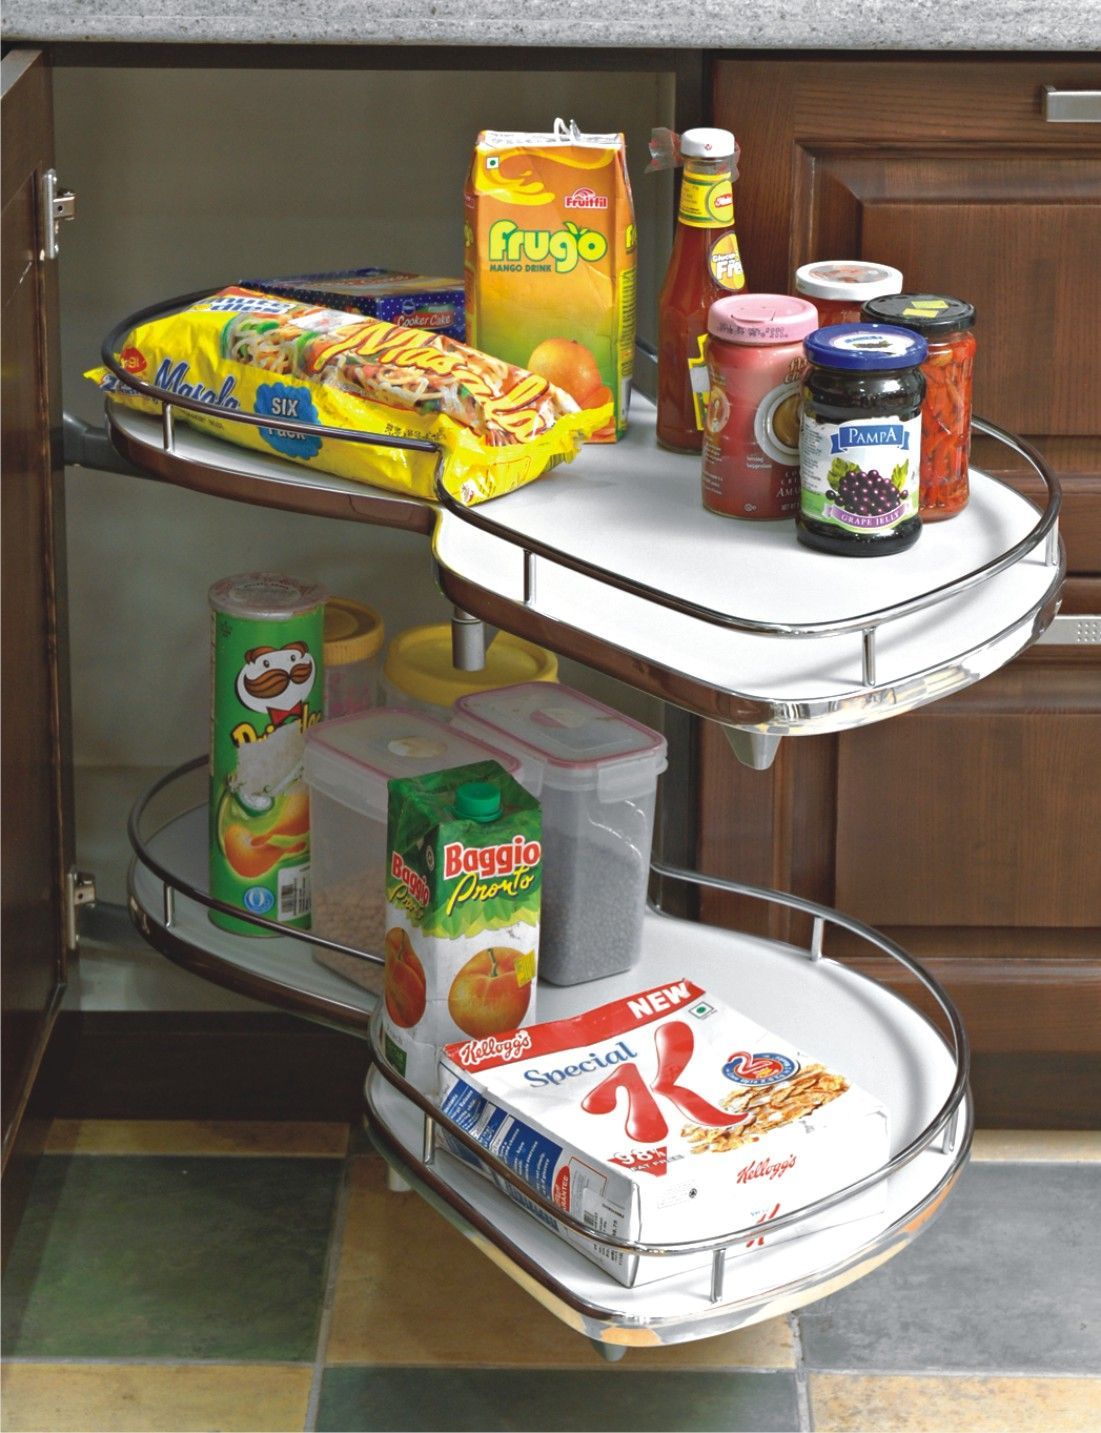 Looking for Modular Kitchen Accessories? - Shop Online One can ...